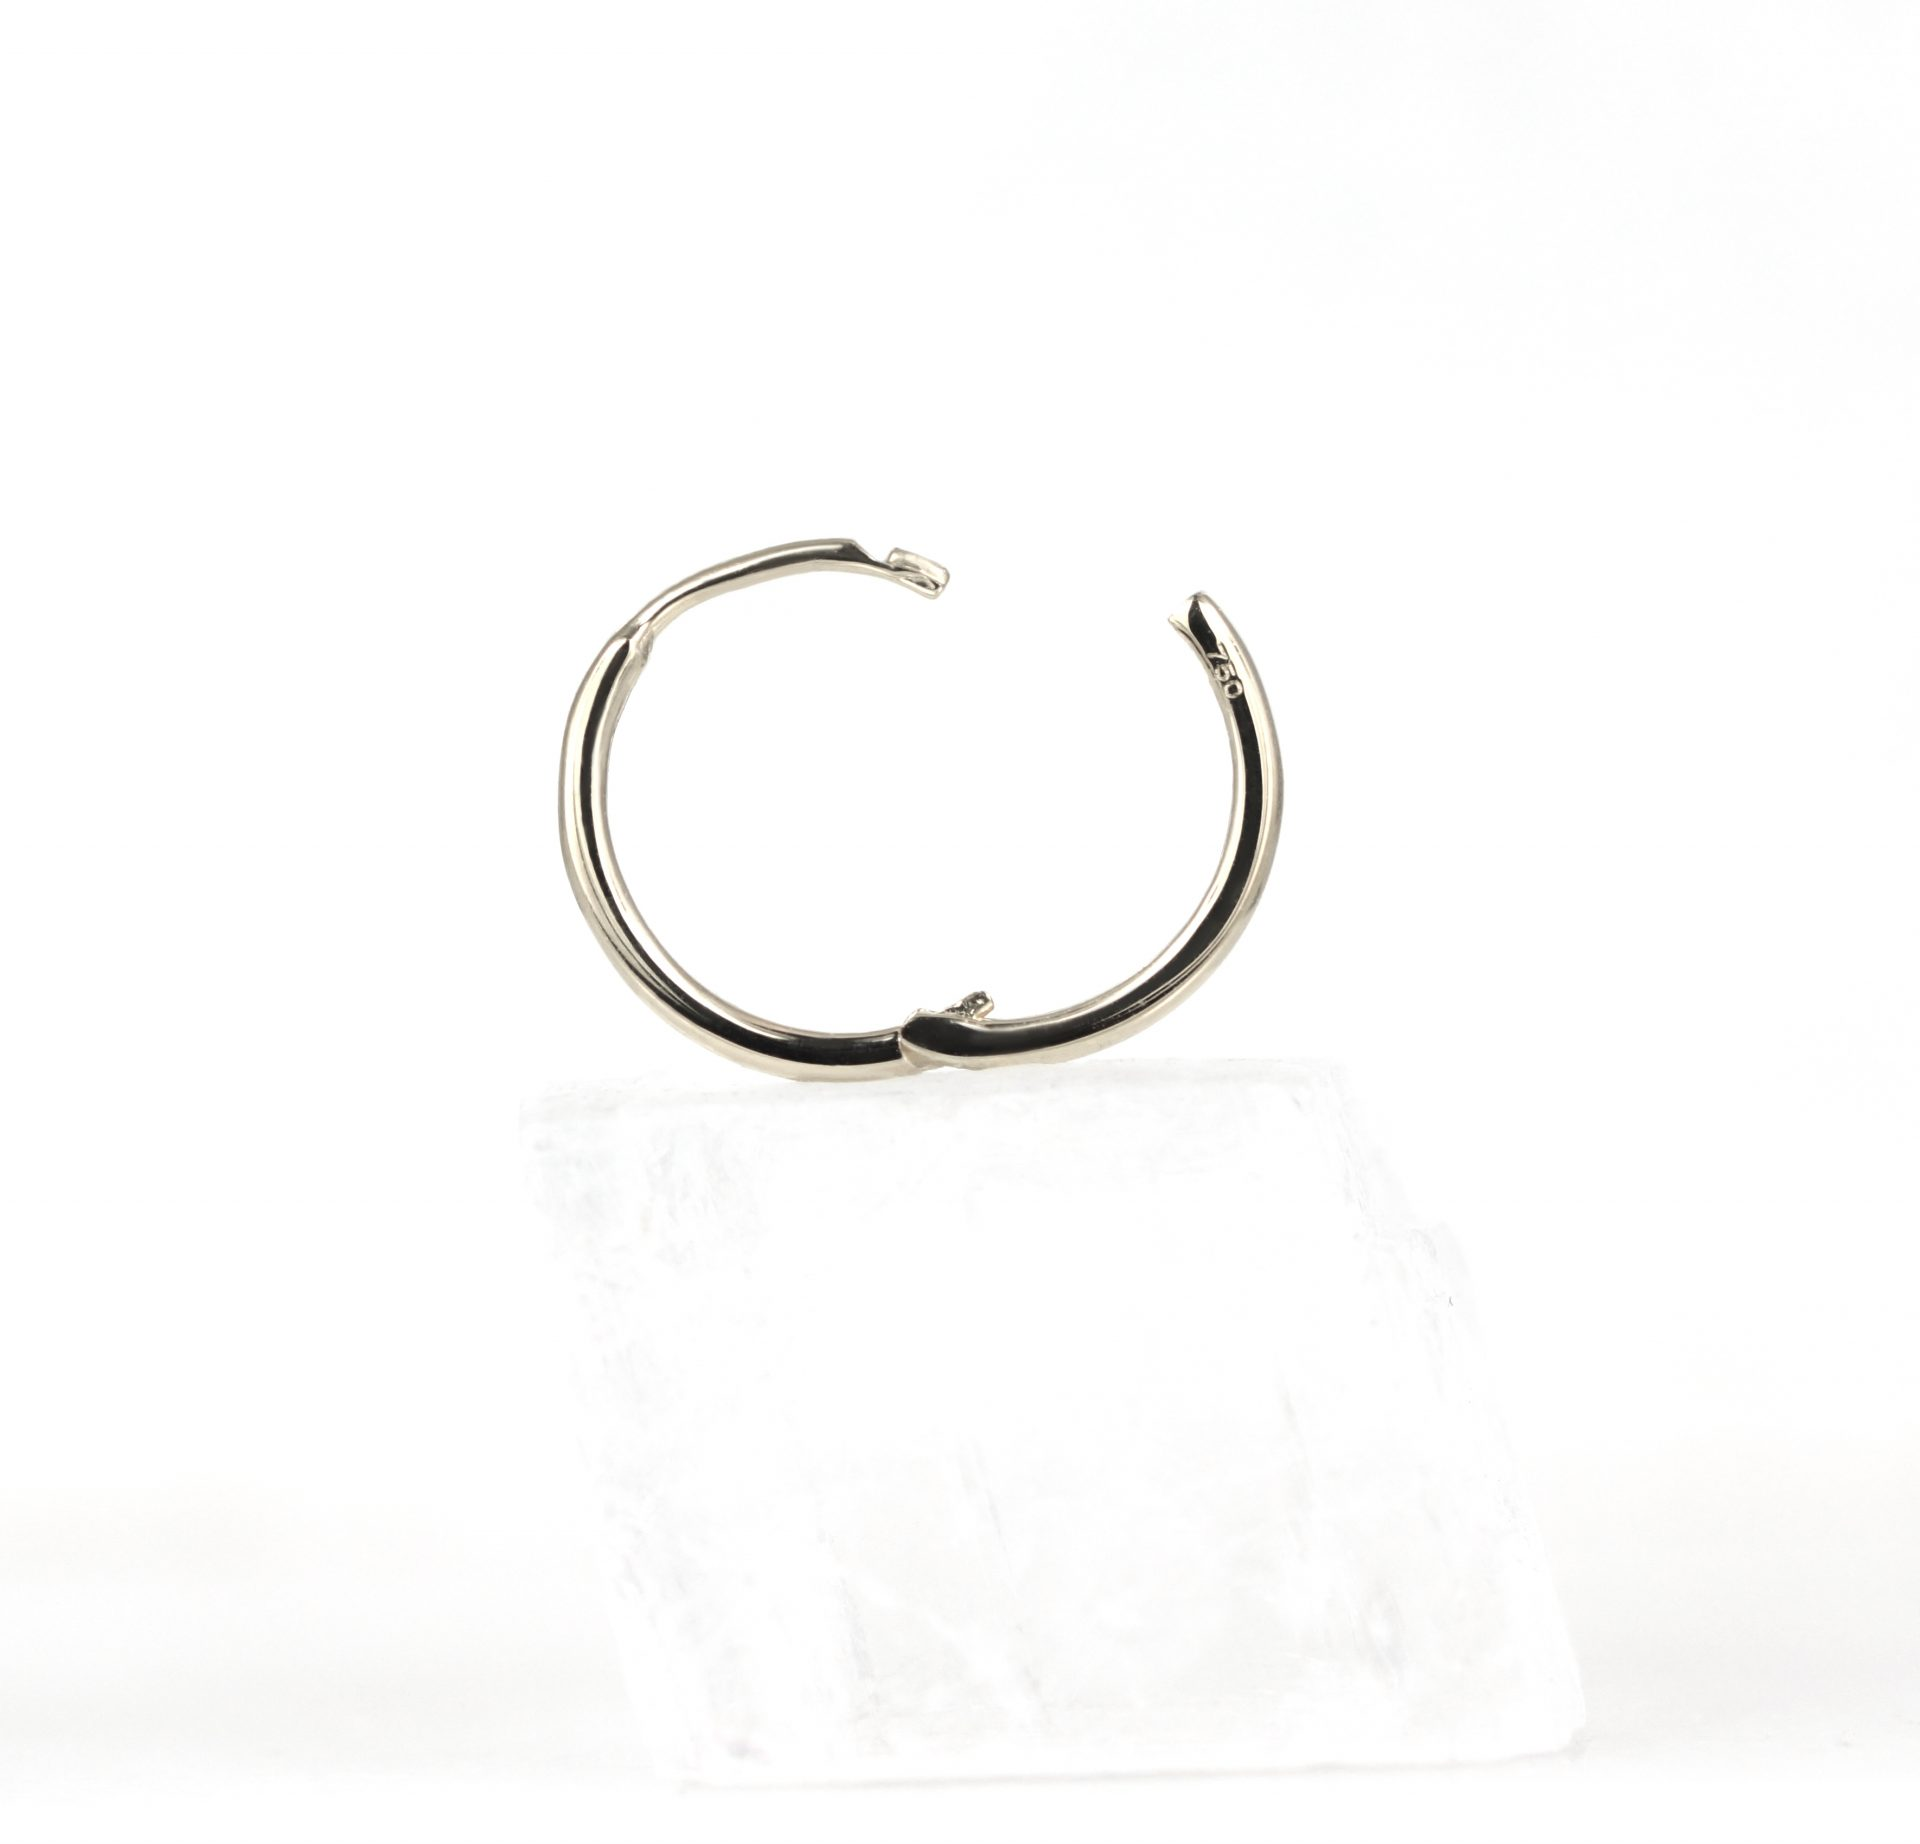 Huggie-Hoop-Earrings-Luxury-Piercing-Lena-Cohen-London-18k-Solid-White-Gold-